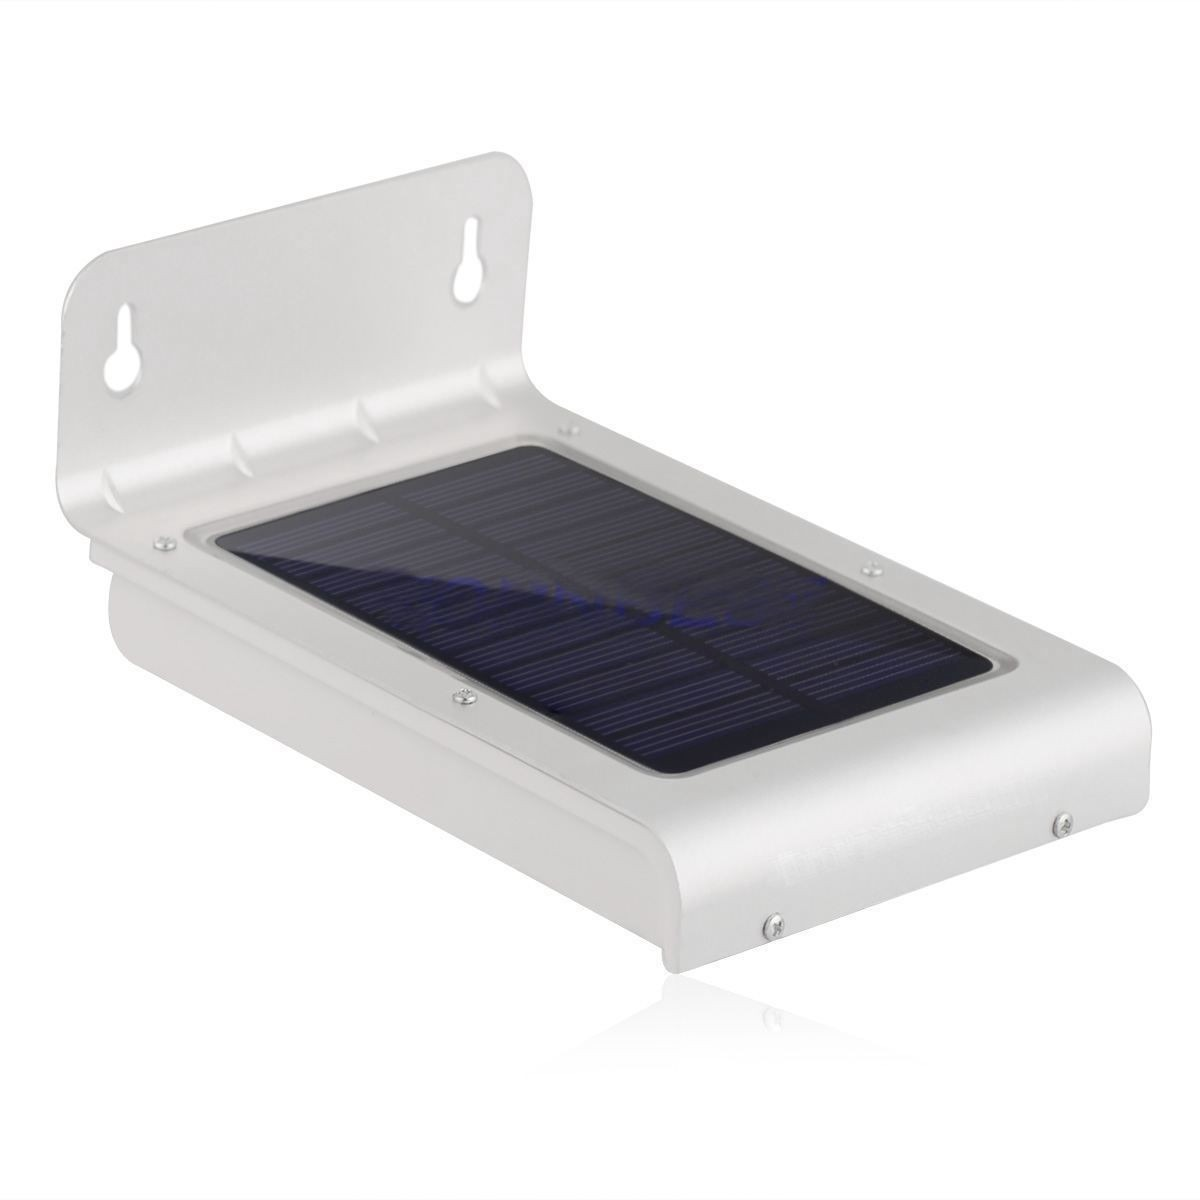 L mpara solar de 24 leds luminaria led solar for Lampara solar led